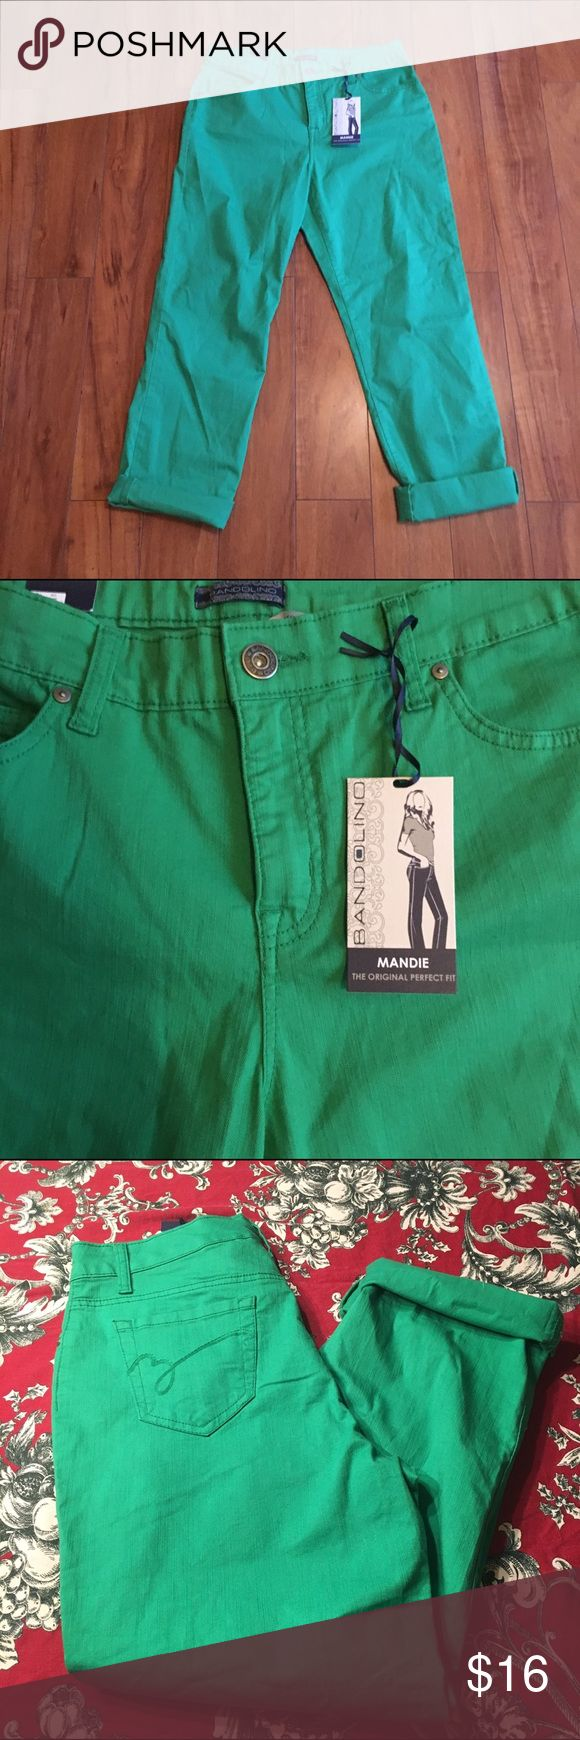 Awesome Kelly green pants NWT Sz 12 NWT gorgeous kelly green straight  jeans. They are a lighter softer material than normal denim. So cute rolled at the hem. Truest color is in second or third picture Bandolino Jeans